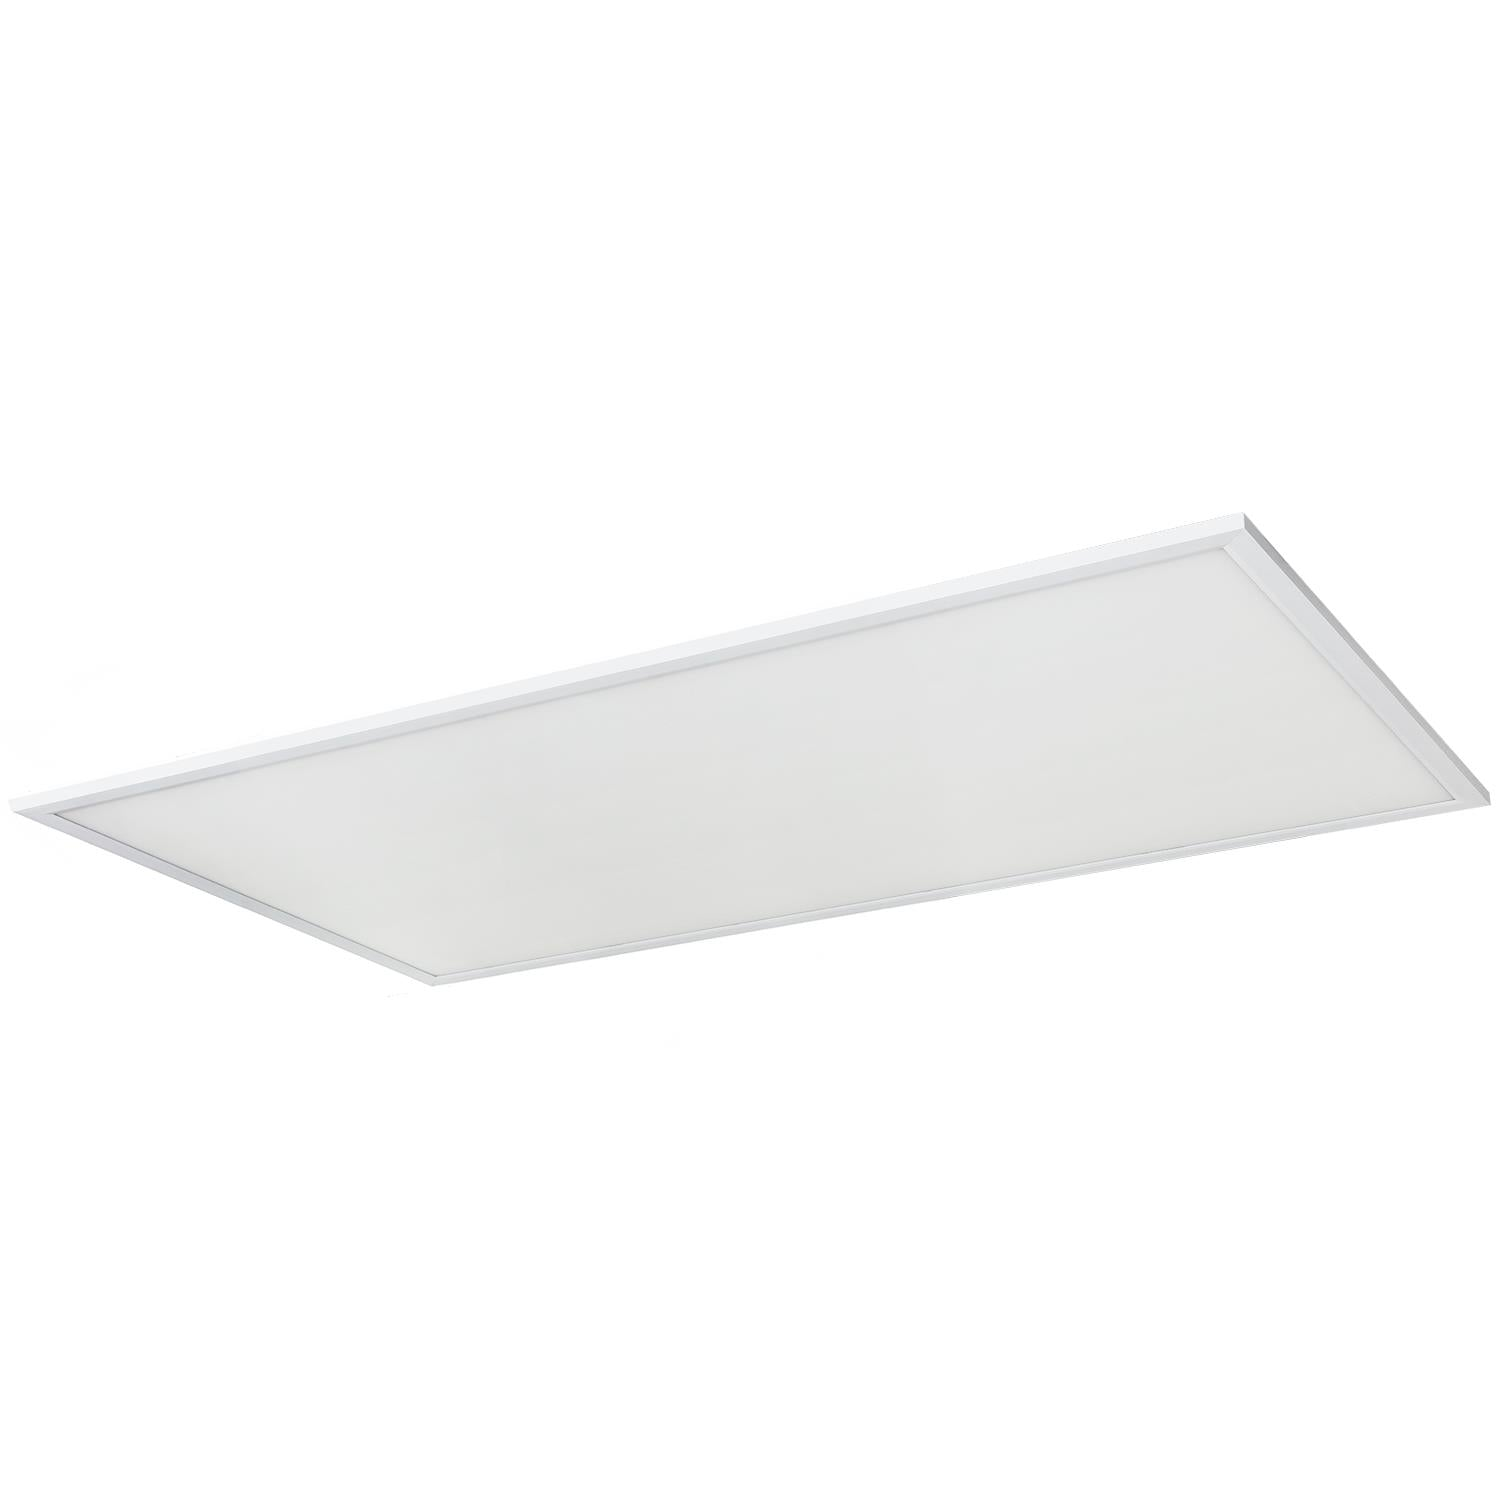 Sunlite 85197-SU 60w 100-277v (2X4) LED Light Fixture Flat Panel - 3500K